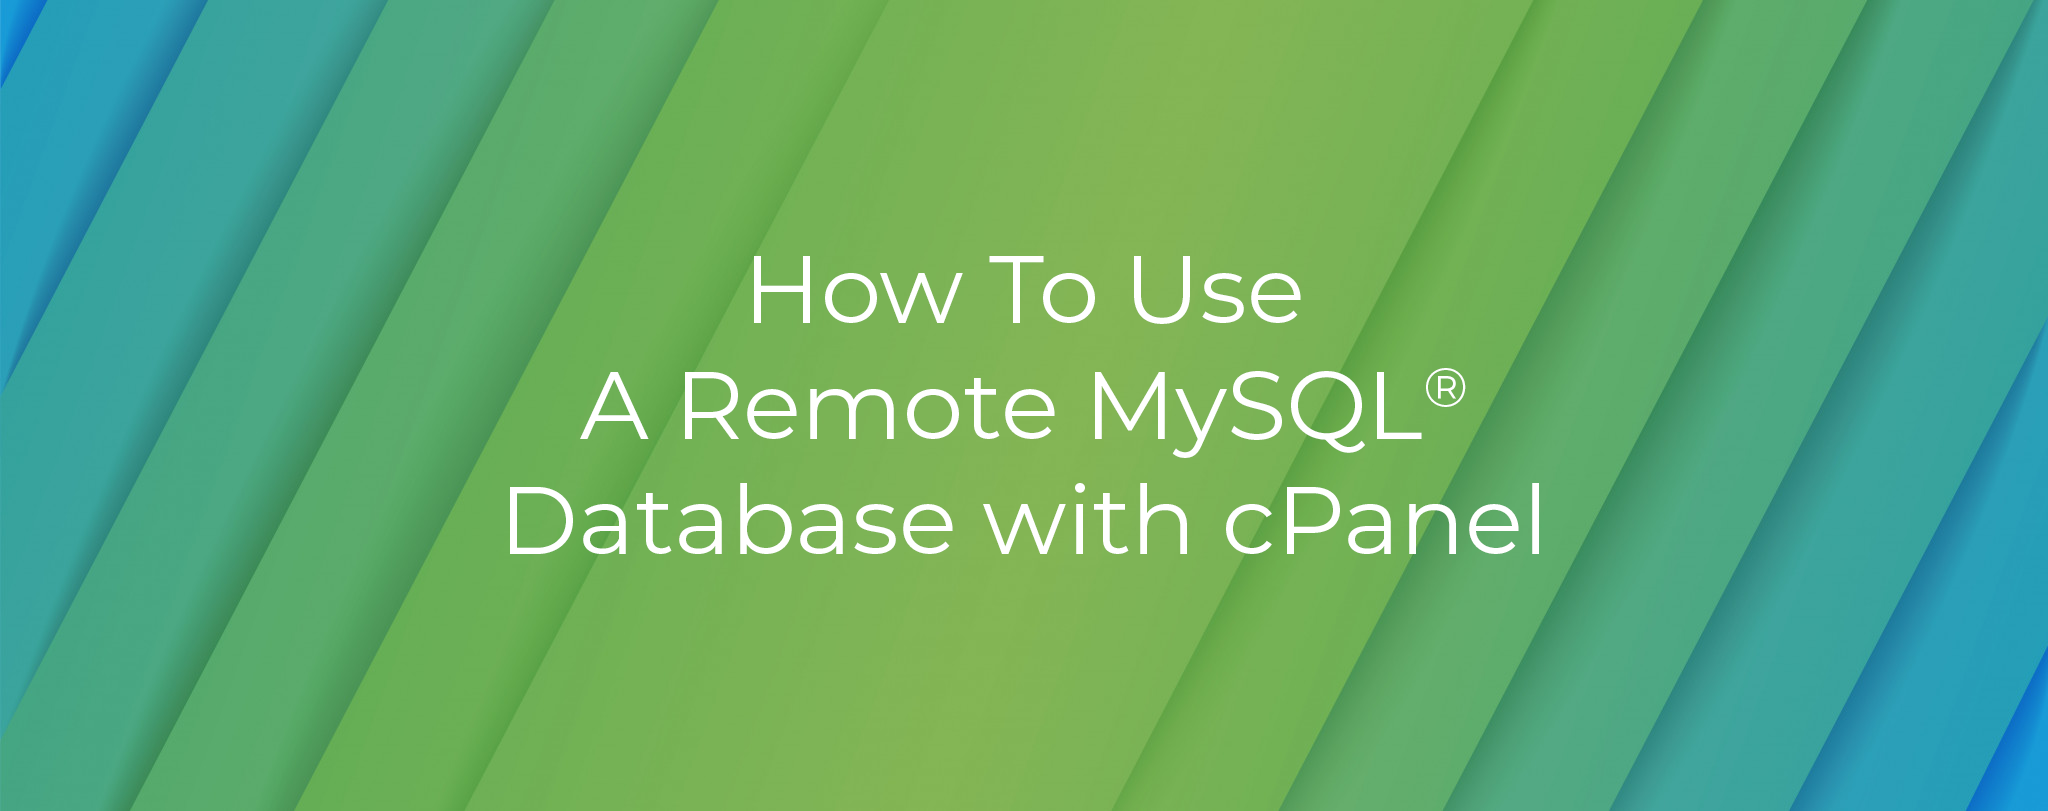 How To Use A Remote MySQL Database With cPanel